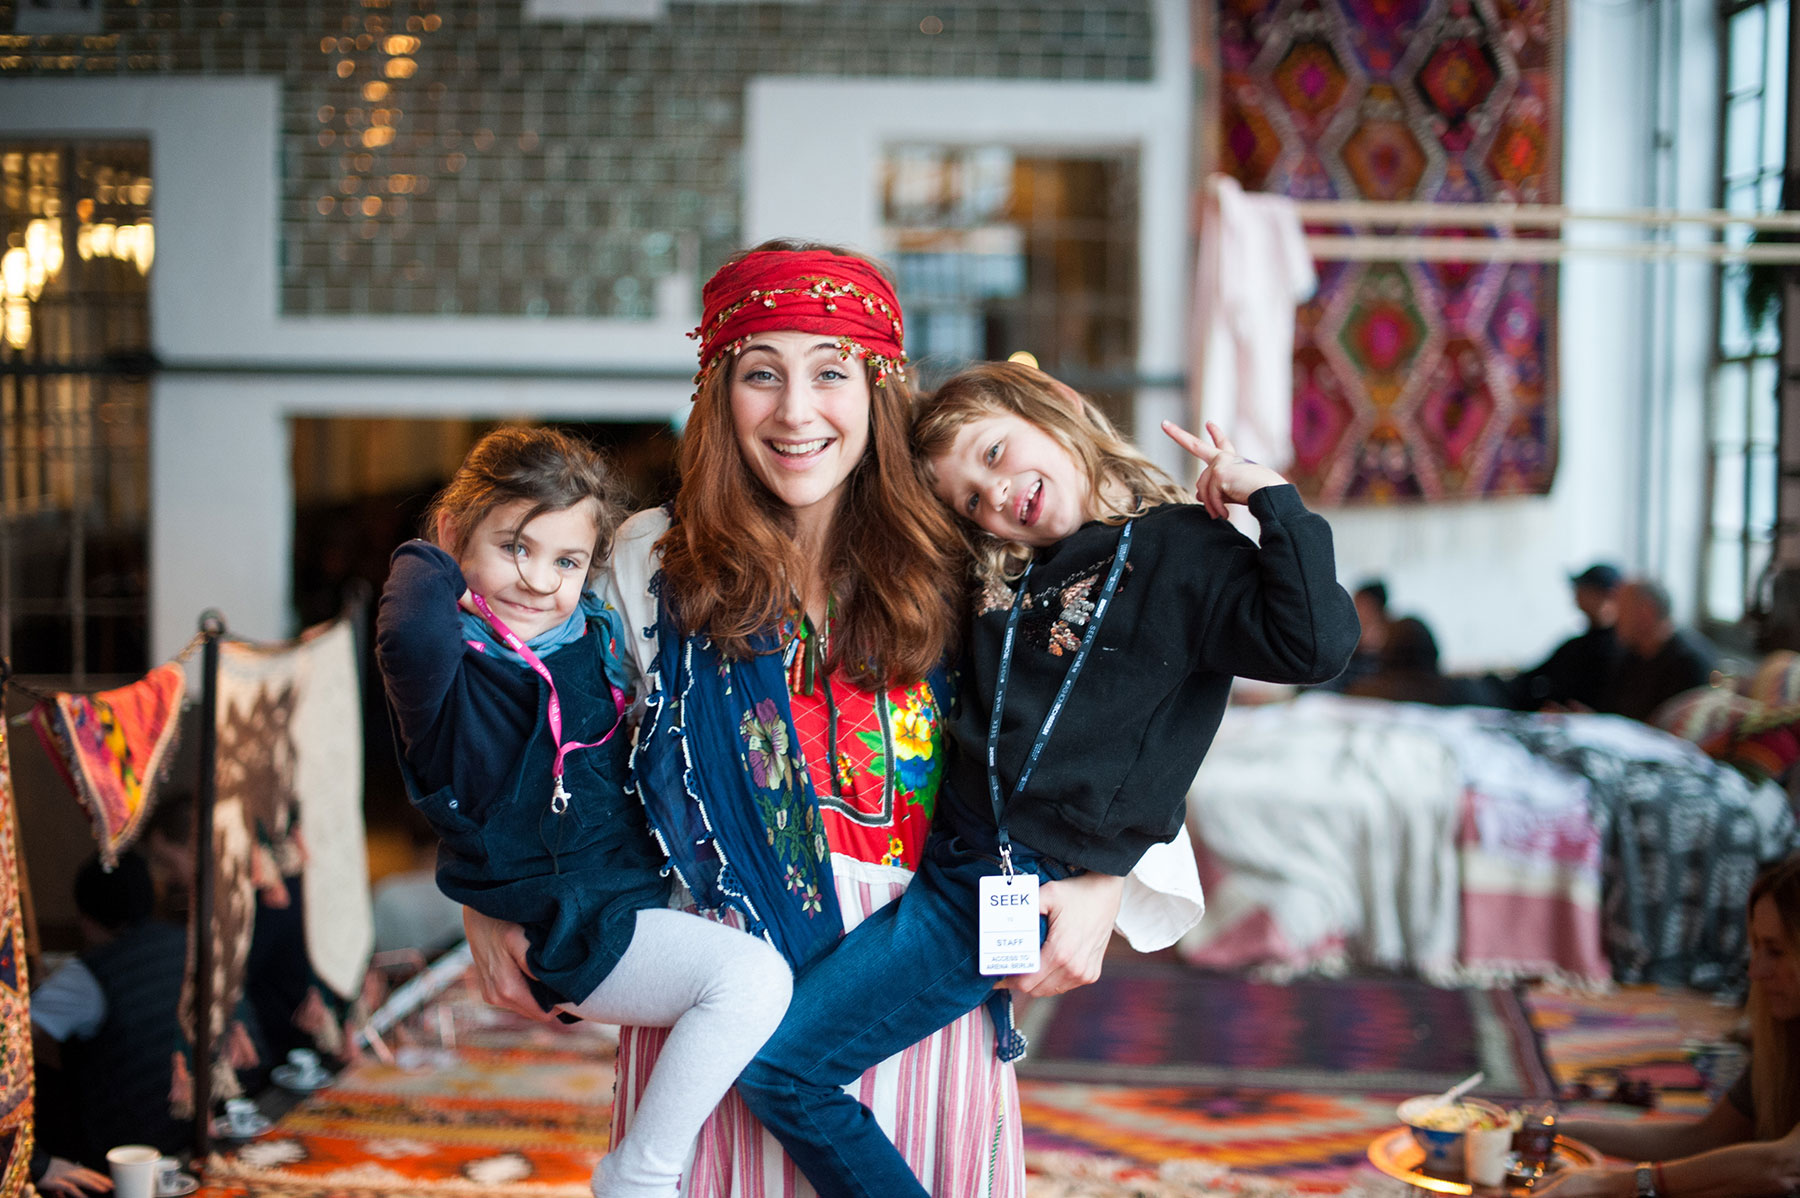 ABOUT BEYZA - I am proud mother of two incredible girls (2011 & 2014), born nearby Stuttgart but with Turkish roots. Living in Berlin since 2006. Dealing with Vintage kilims and rugs from the midcentury, sourcing, cleaning and restoring them in a sustainable and ecological way. Besides this I am plant dying garments and working on a sustainable fashion collection, an oriental pharmacy and a Turkish restaurant.#MomlifeRosa 8 years girl, Elanur 5 years girlWhat is your favourite travel hack with kids?spending the whole summer in the Southcoast of Turkey in my parents house (with pool & beach in front) and traveling through other parts of Anatolia with them, combining family travel and business at the same time.What do you do for self care?Kundalini yoga, meditation, health food (Turkish superfoods), fasting and lots of traveling#WorklifeCEO & founderWild Heart Free Soulwww.wildheartfreesoul.comSide HustleWild Plant Dying, producer of natural soaps & cosmeticsInterested in Collaborating